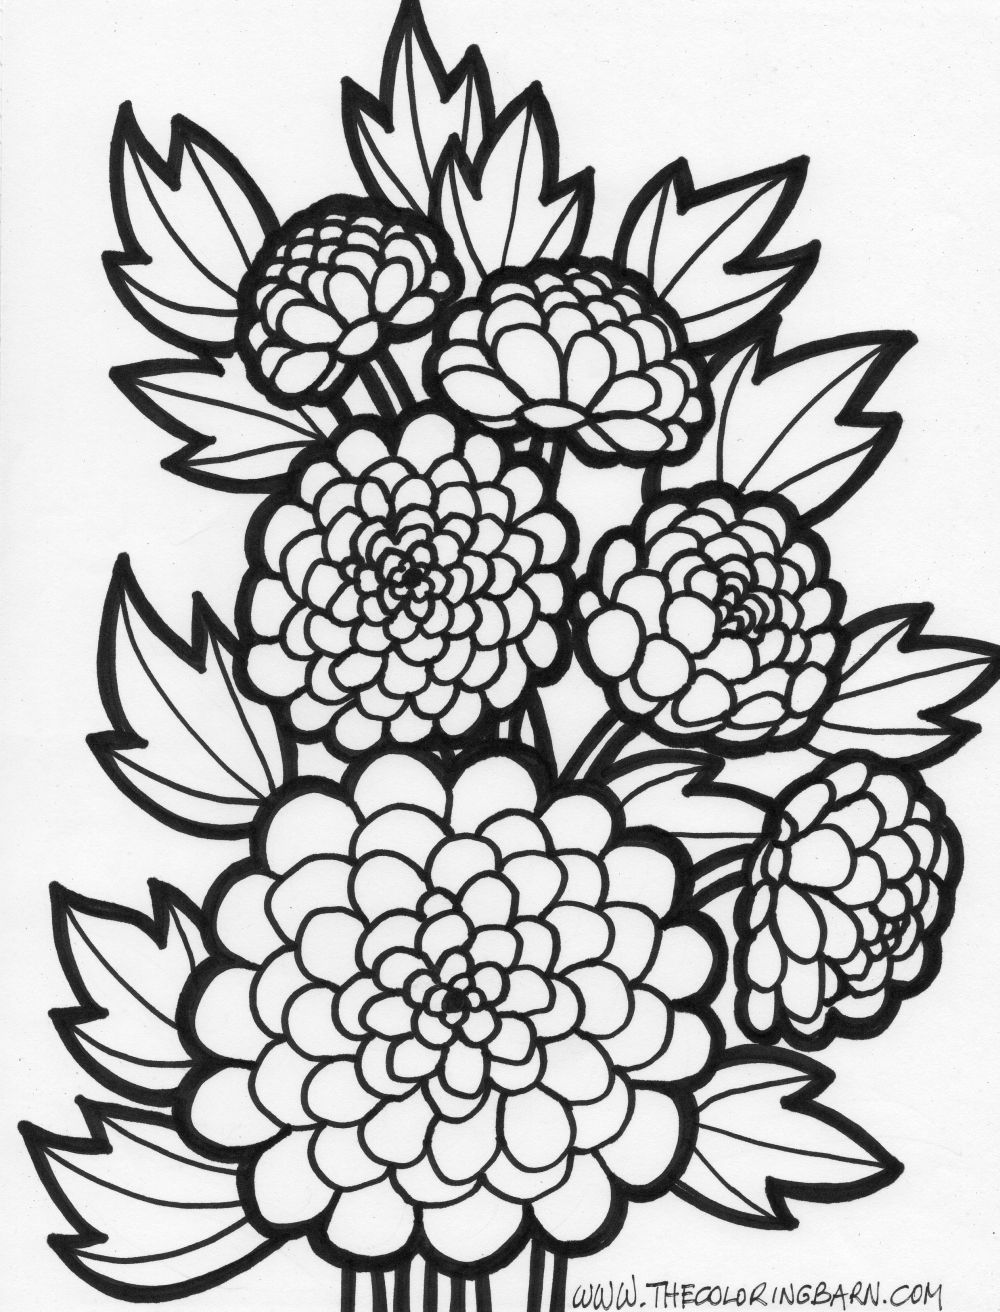 Flower Coloring Page Wonderful Craft To Accompany The Book Who Made You Childrens Crafts Home Schooling